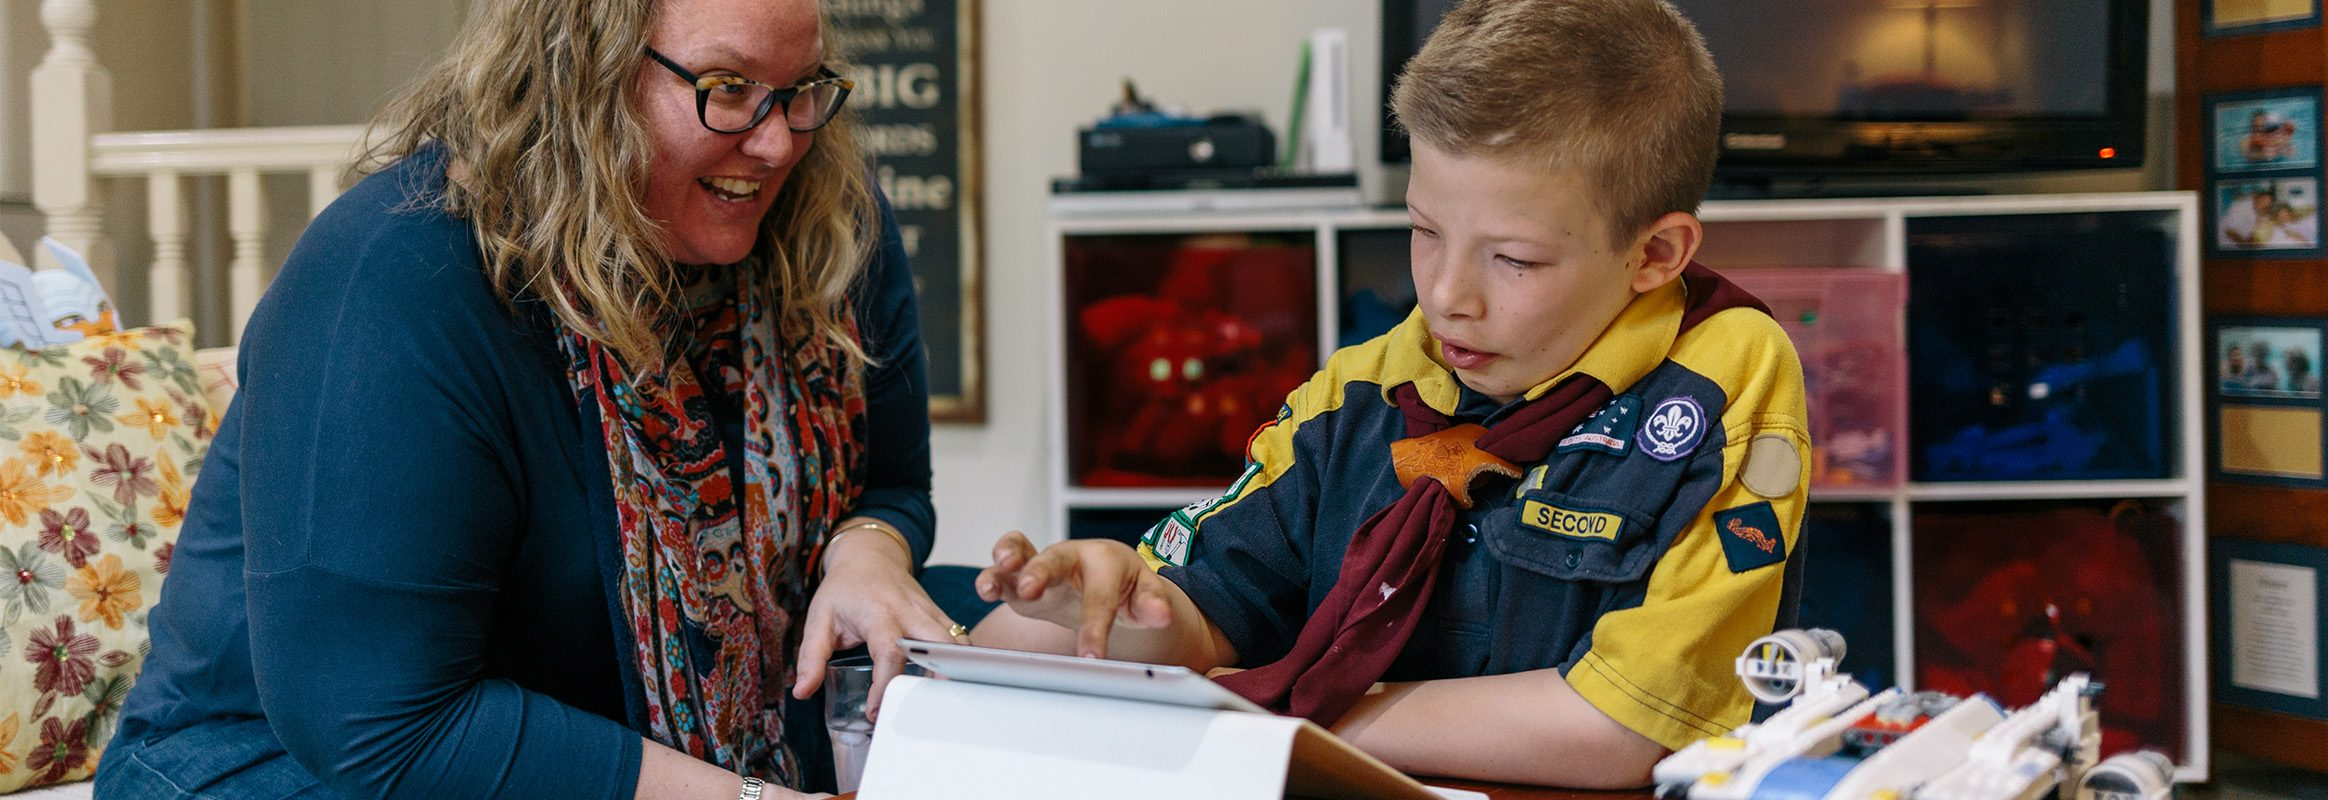 Boy and teacher using iPad